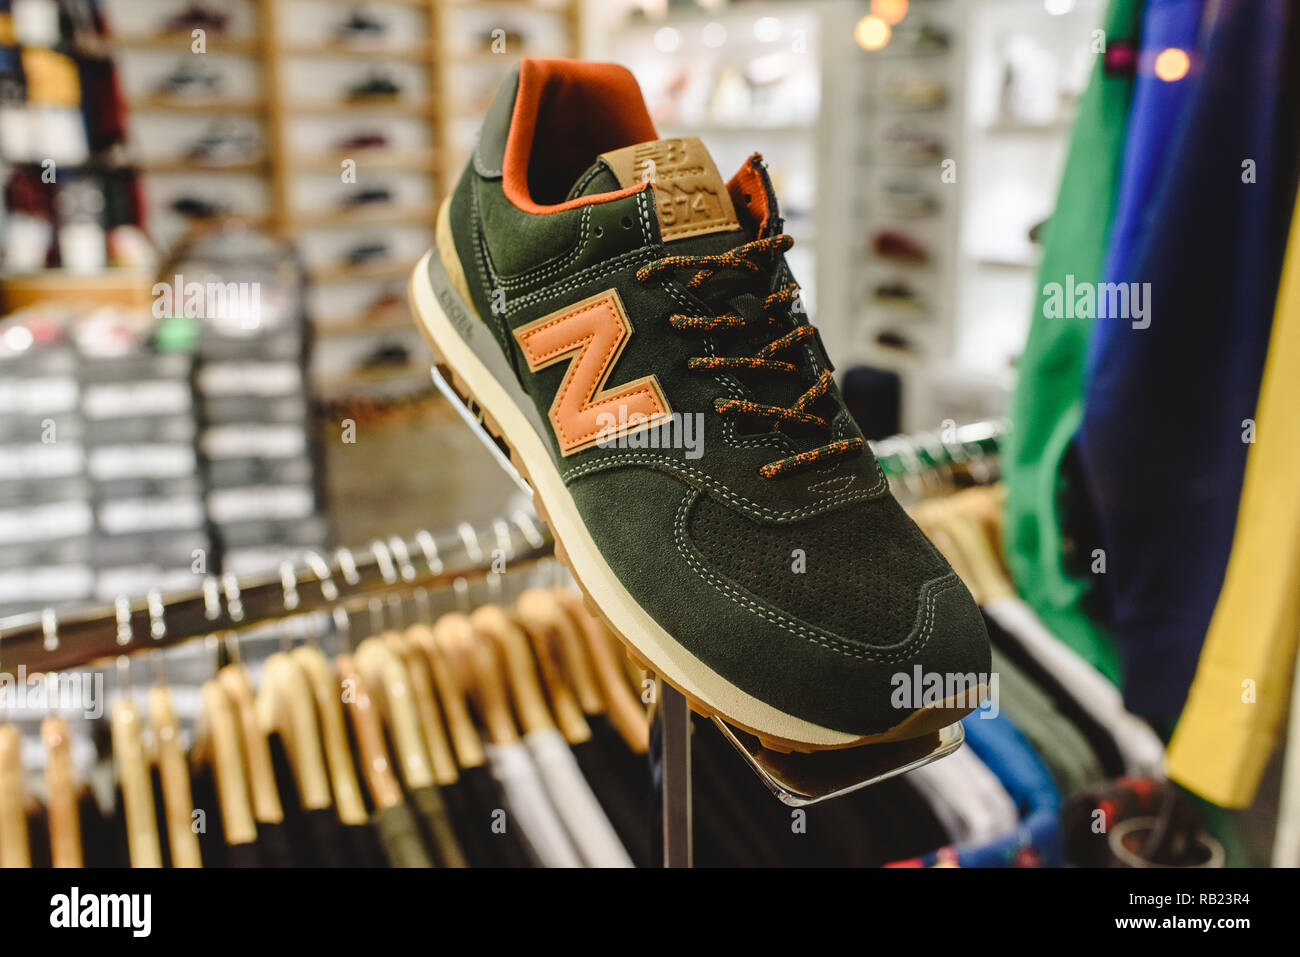 look good shoes sale the sale of shoes lowest discount Valencia, Spain - January 2, 2019: New Balance sneakers ...